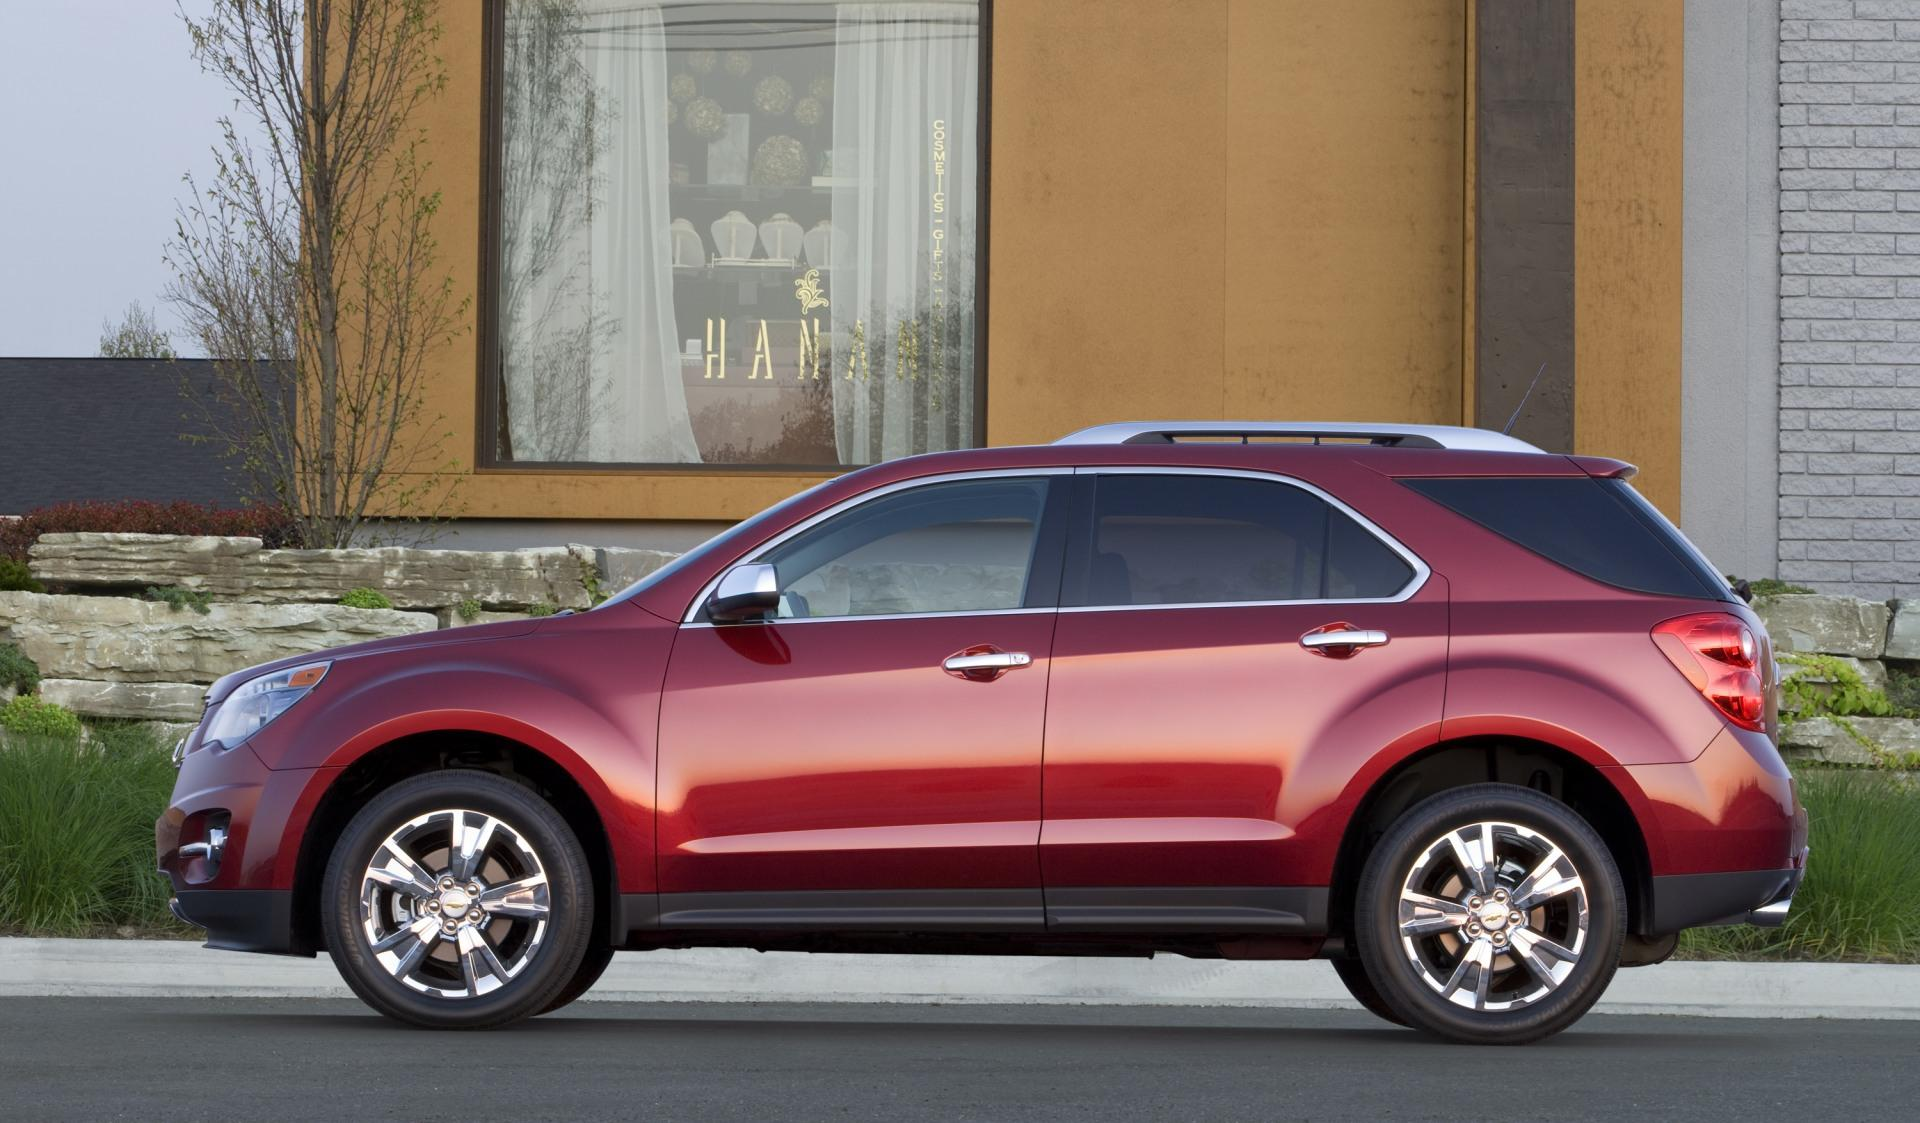 2011 chevrolet equinox technical specifications and data engine dimensions and mechanical. Black Bedroom Furniture Sets. Home Design Ideas